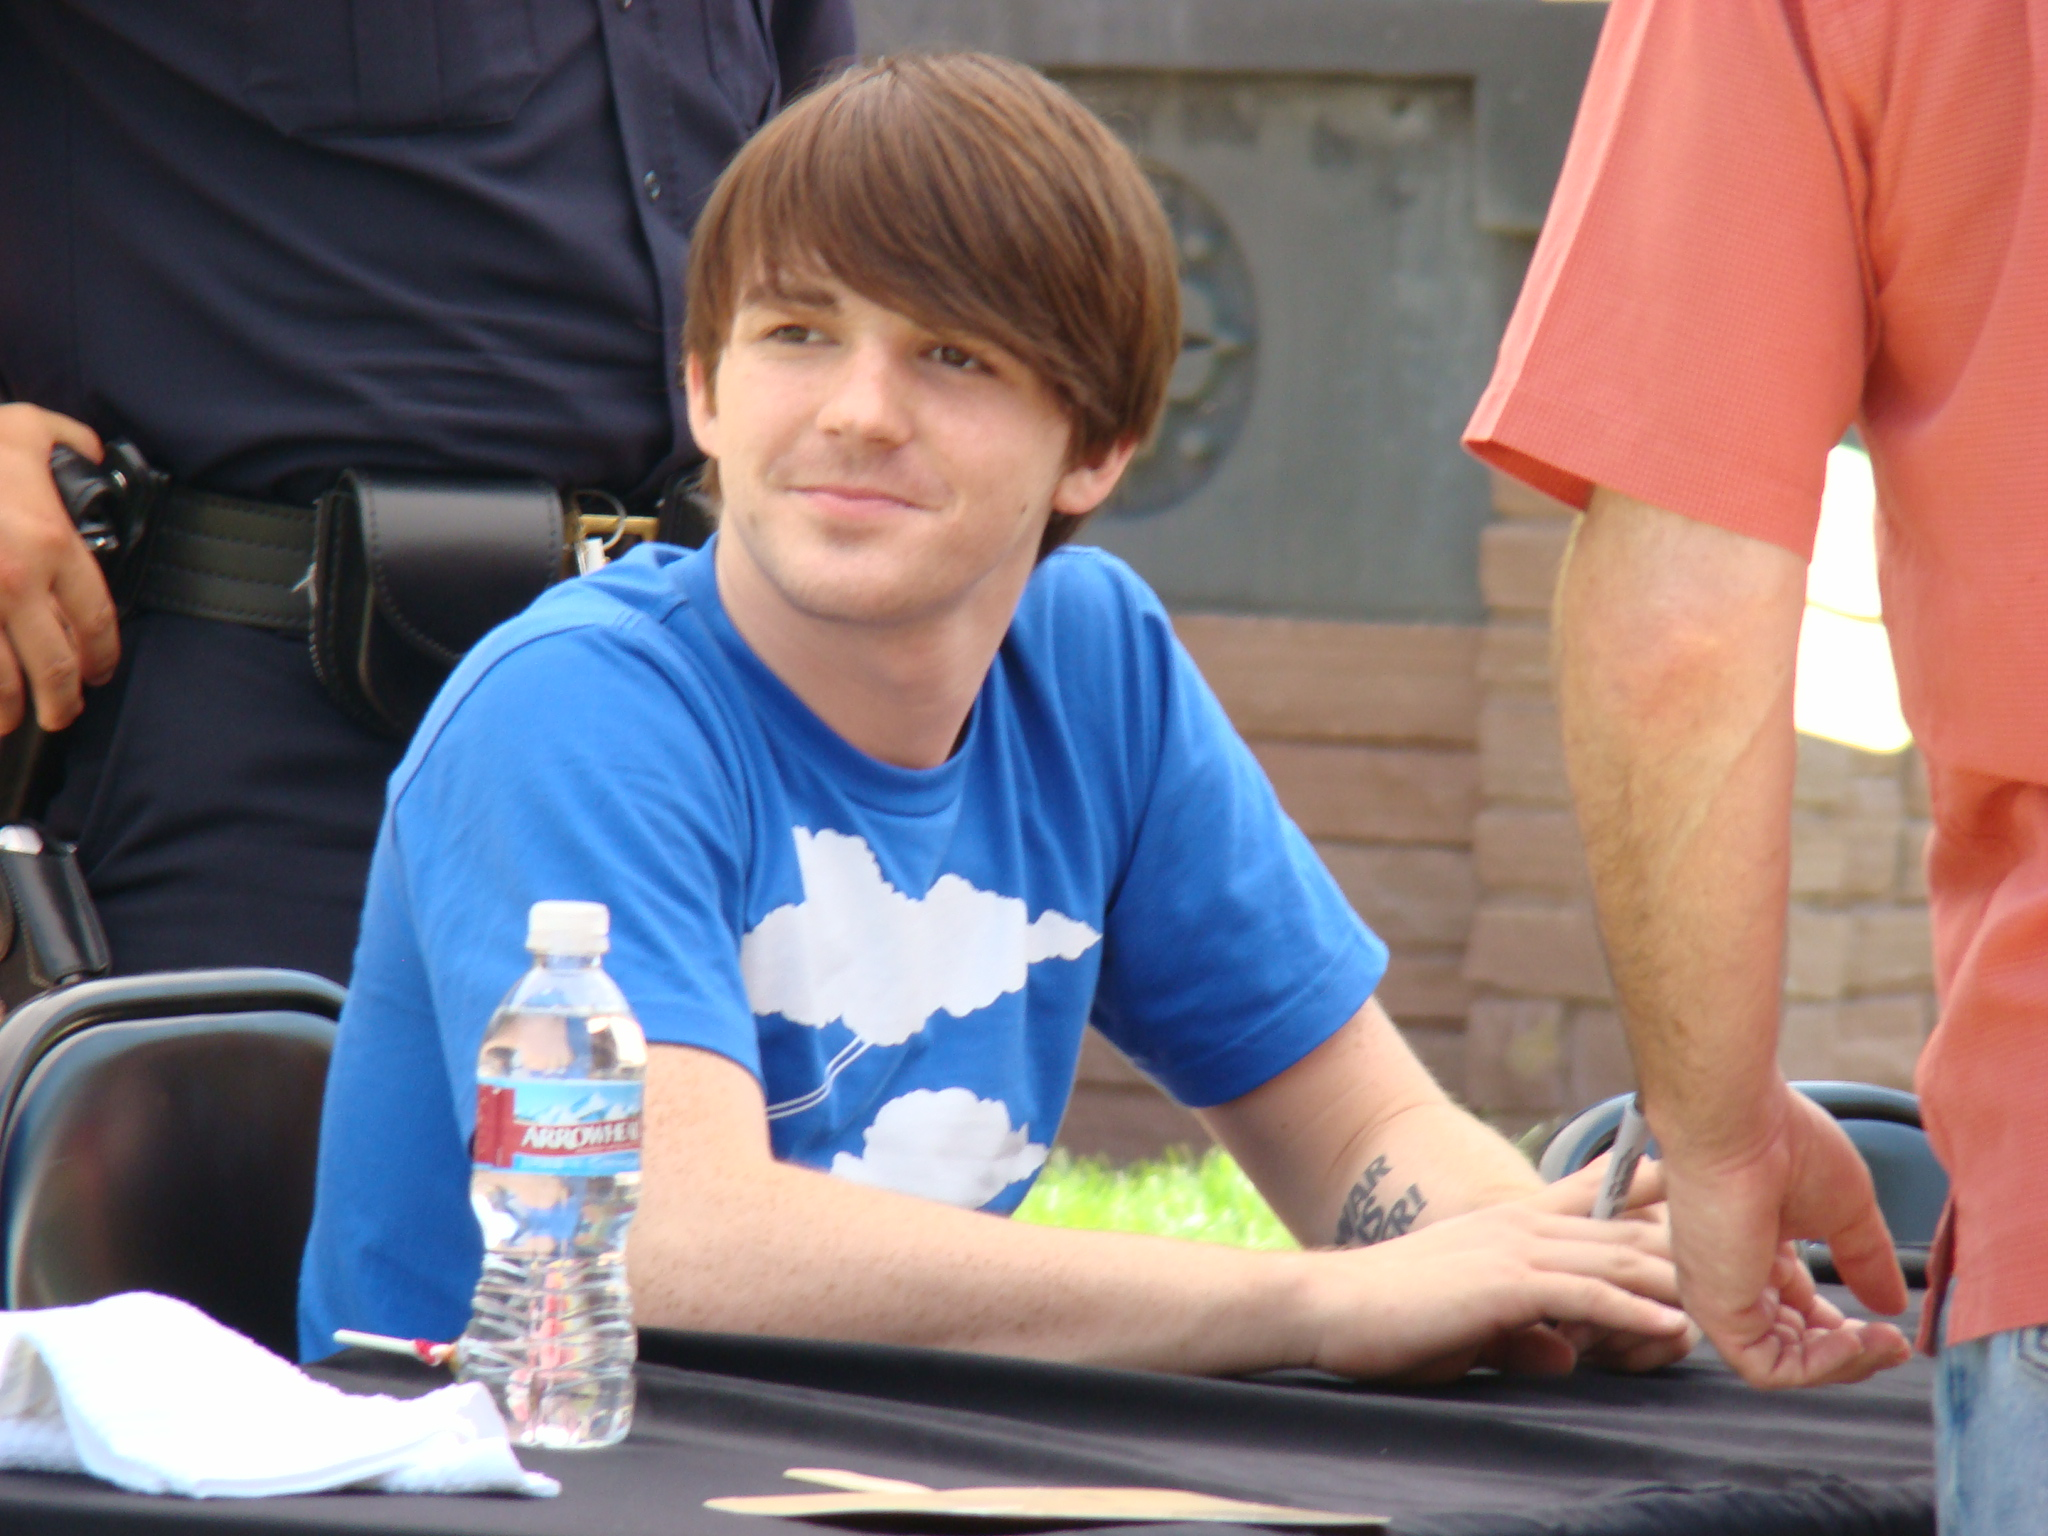 Filedrake bell 2007g wikimedia commons filedrake bell 2007g voltagebd Image collections